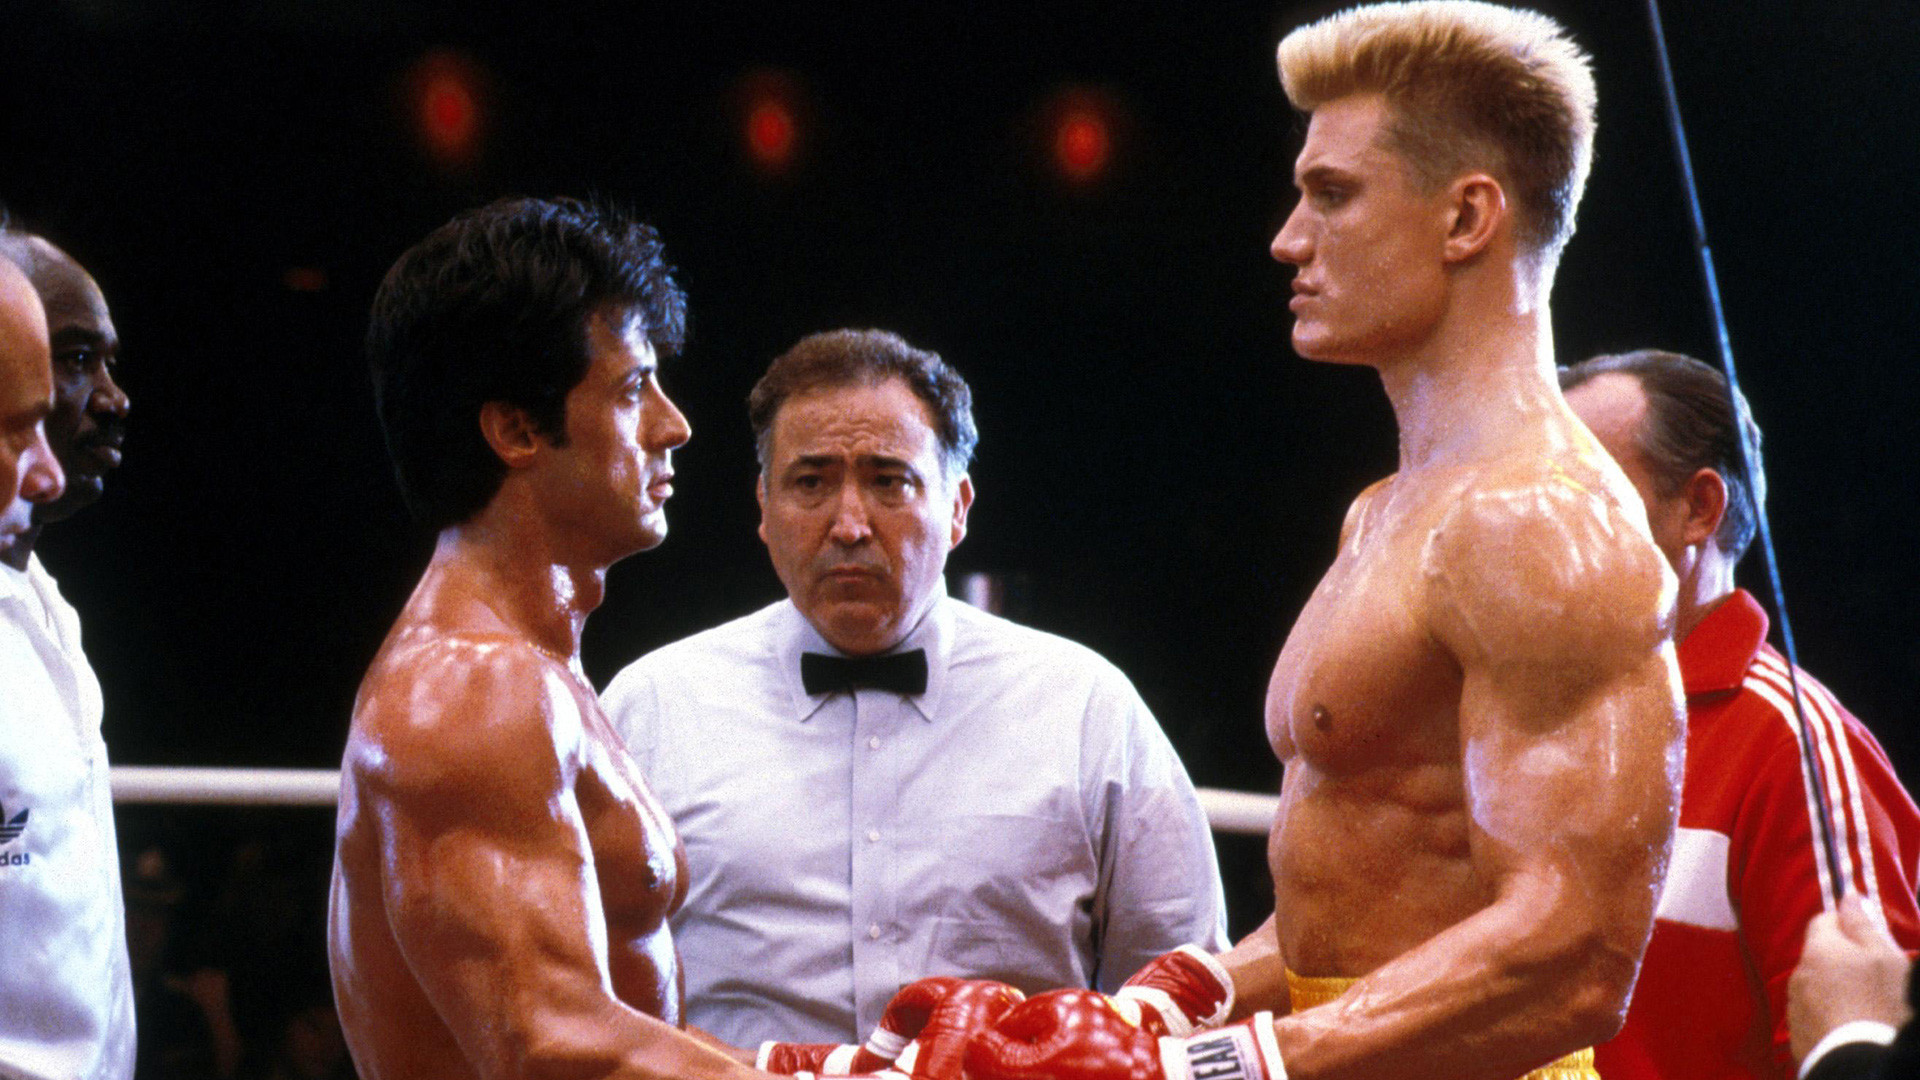 Ivan Drago (right), Rocky IV (1985)